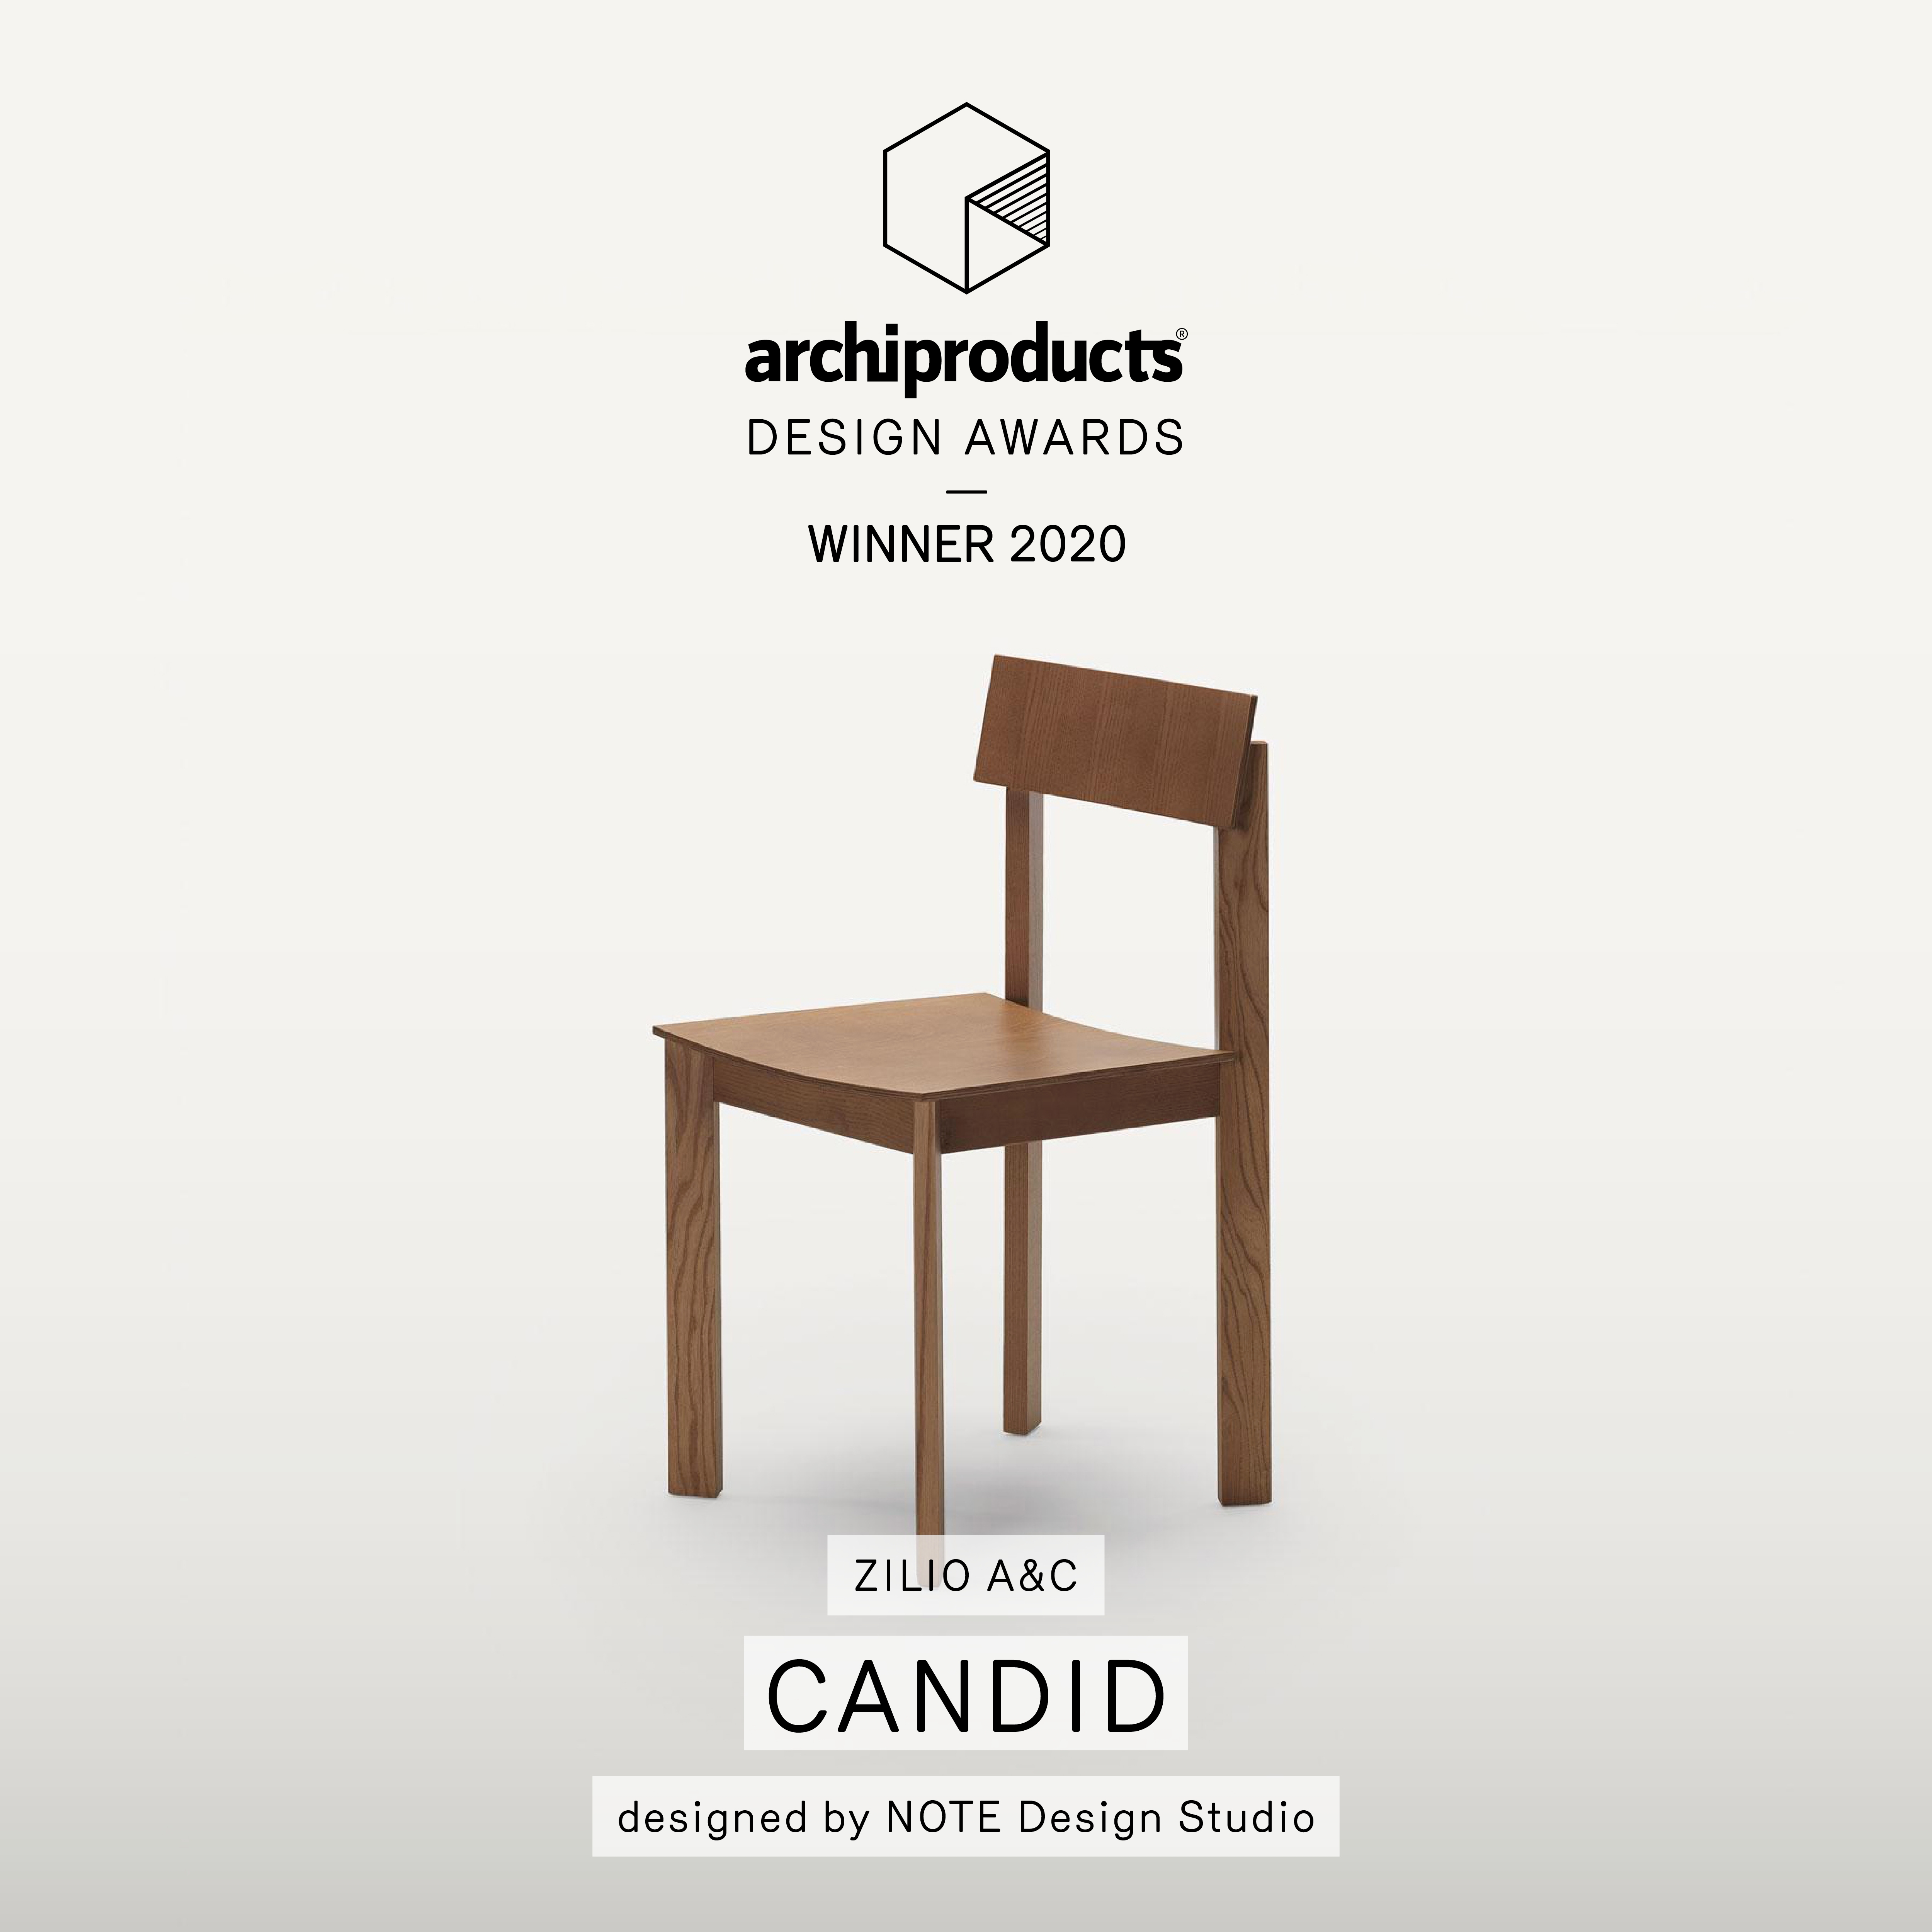 Candid wins Archiproducts Design Awards 2020